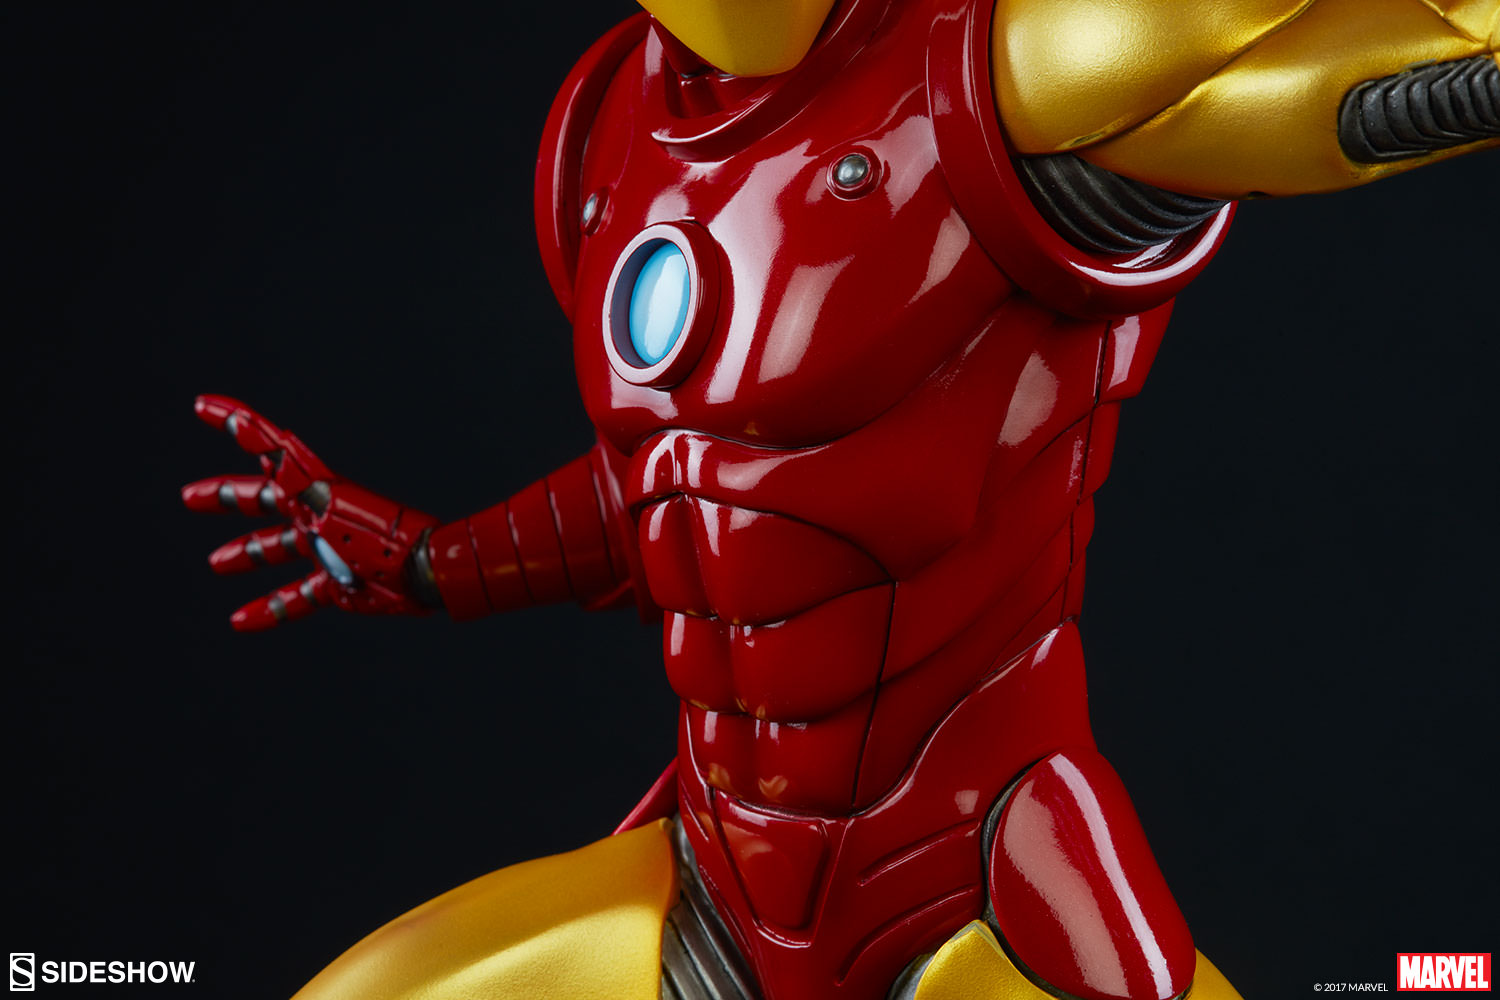 Marvel Iron Man Statue by Sideshow Collectibles   Sideshow Collectibles Iron Man Statue Iron Man Statue